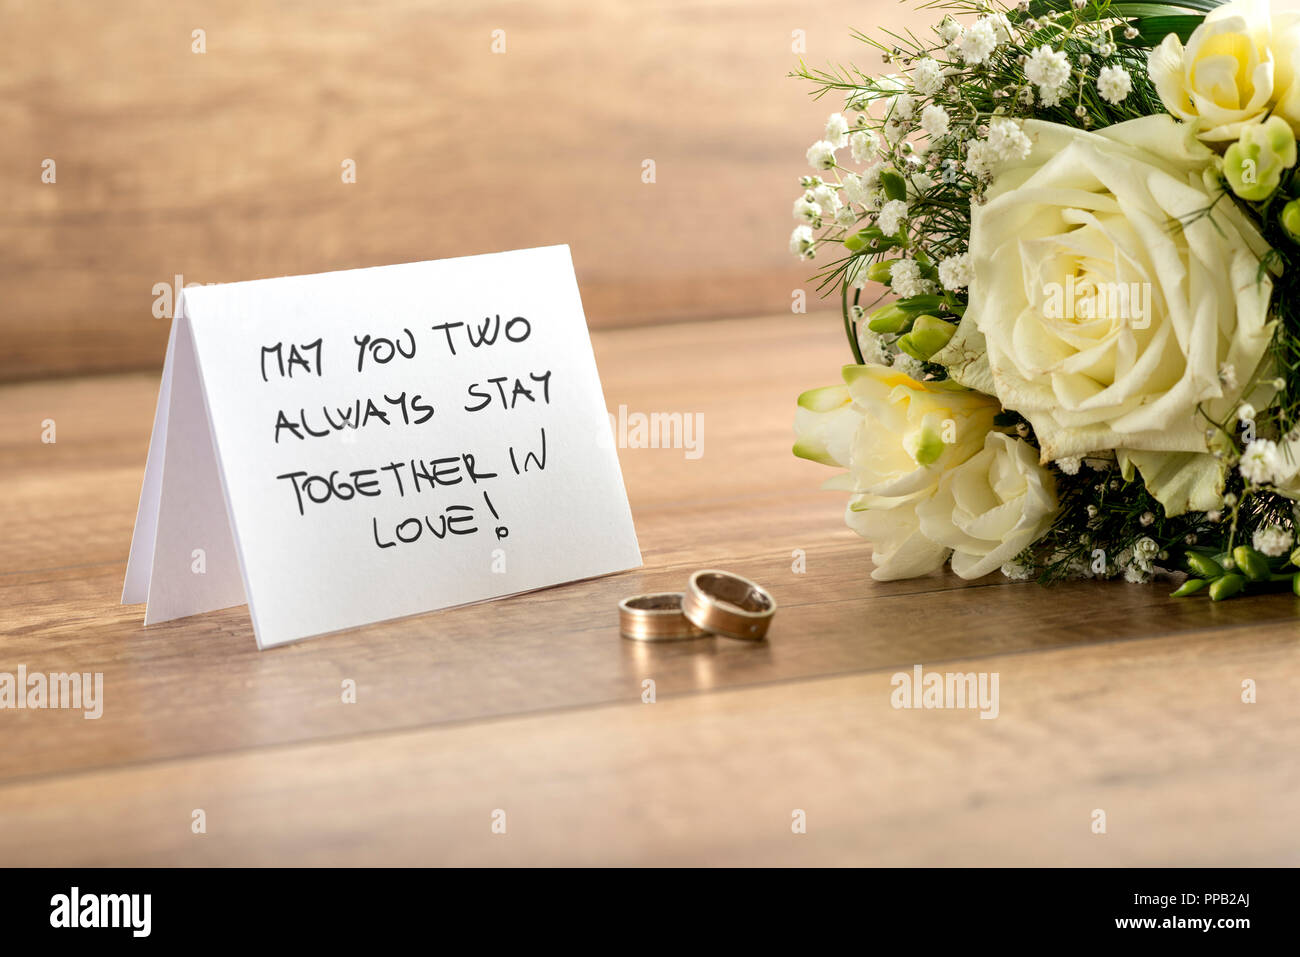 Close Up Wedding Greeting Card With May You Two Always Stay Together